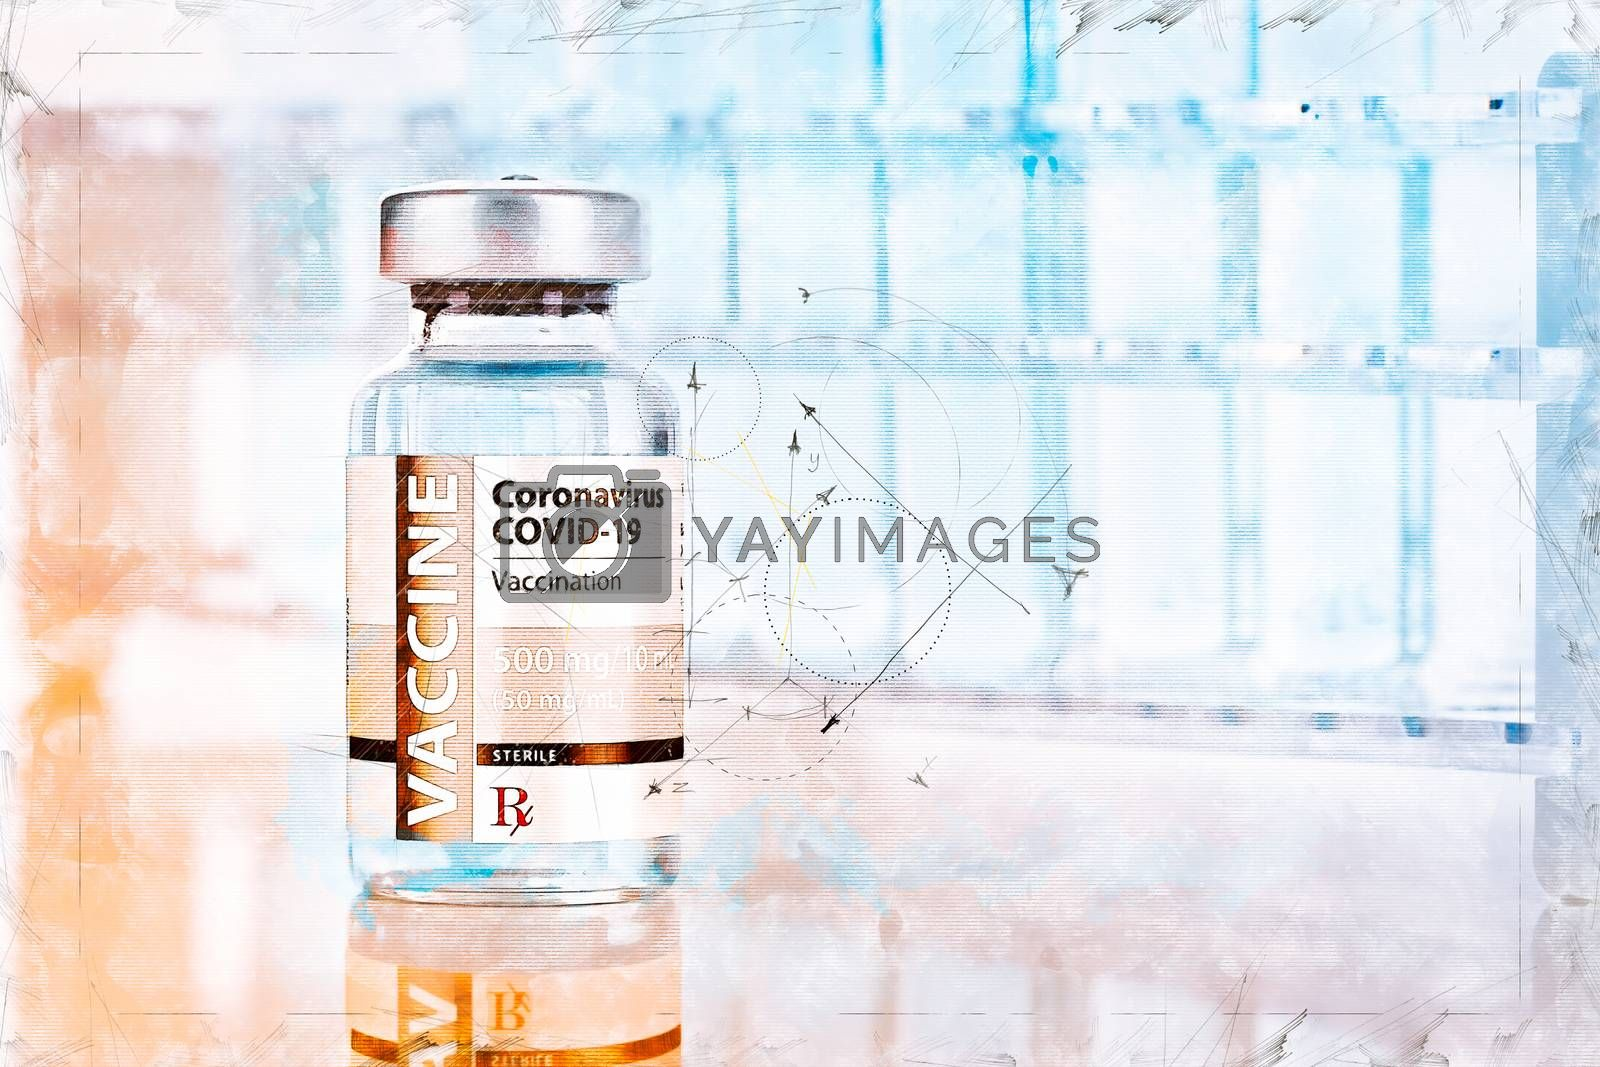 Artistic Rendering Sketch of Coronavirus COVID-19 Vaccine Vial a by Feverpitched